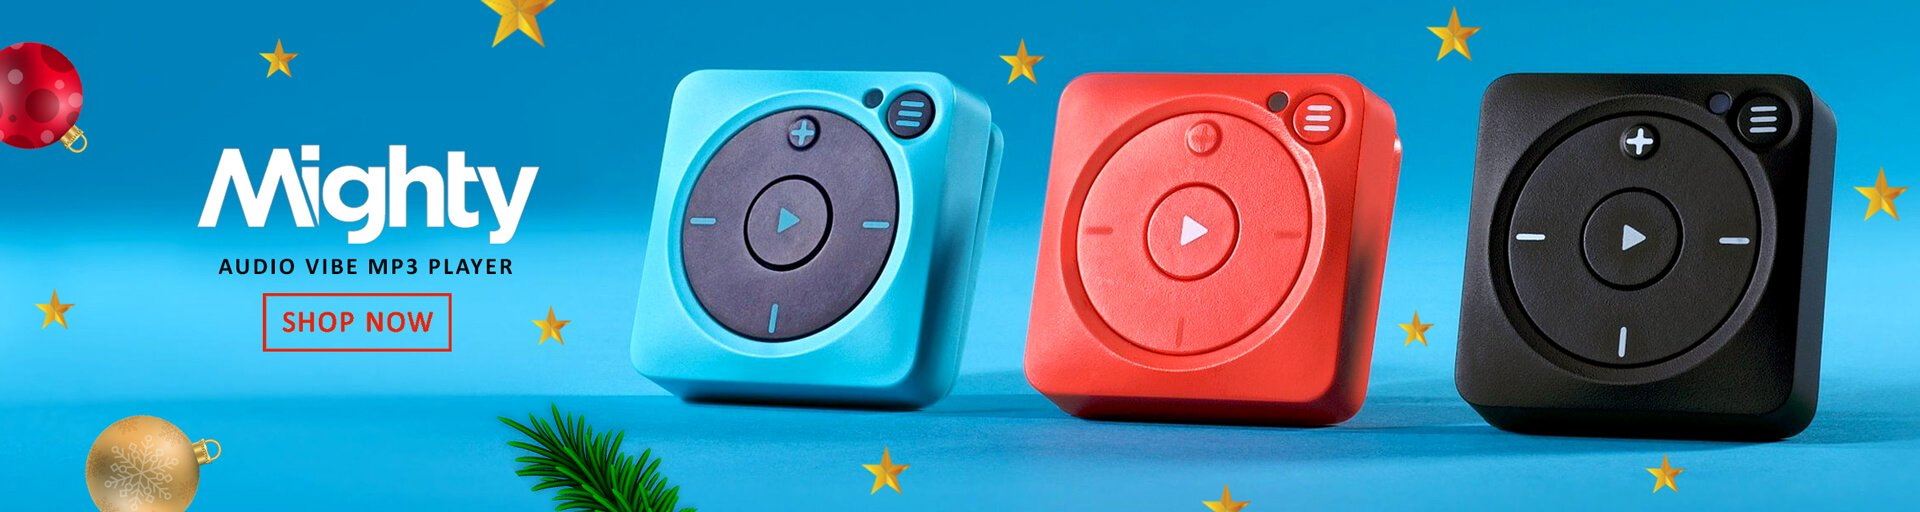 Mighty Audio Vibe MP3 Player